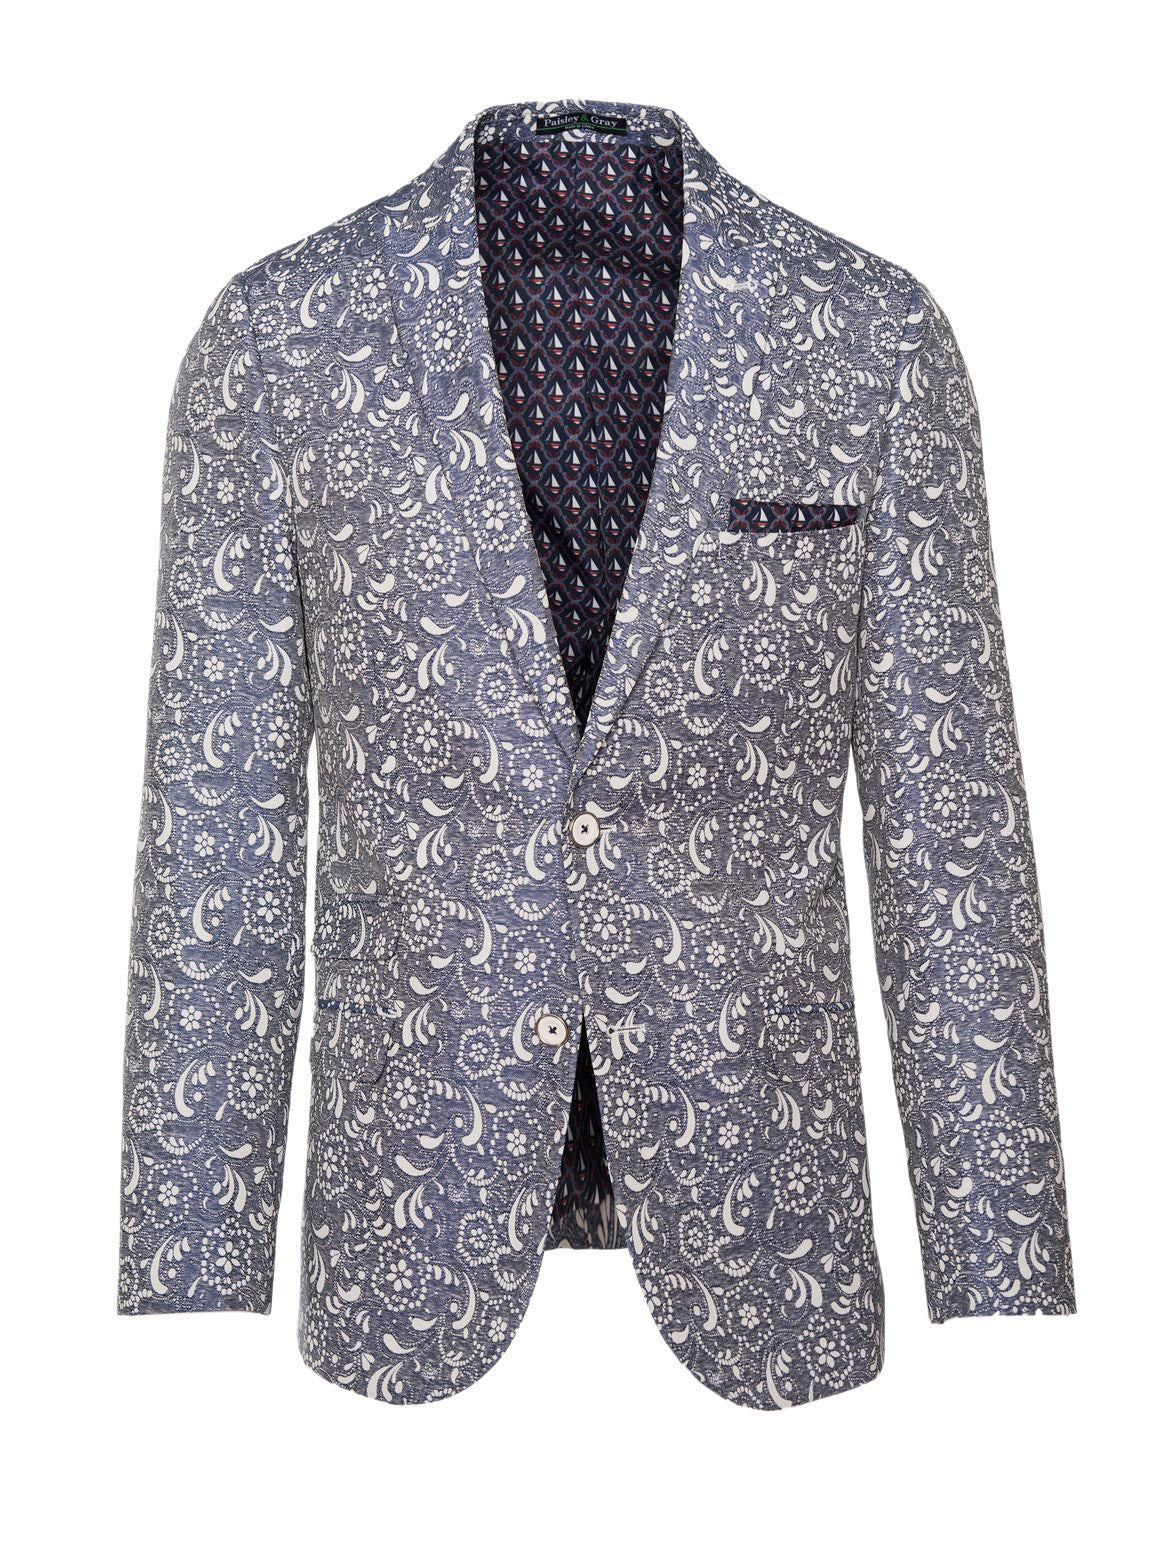 paisley & gray denim & paisley jacquard slim fit peak lapel suit jacket 2162J nautical sailboat fleet lining and pocket square white plated buttons flap pockets